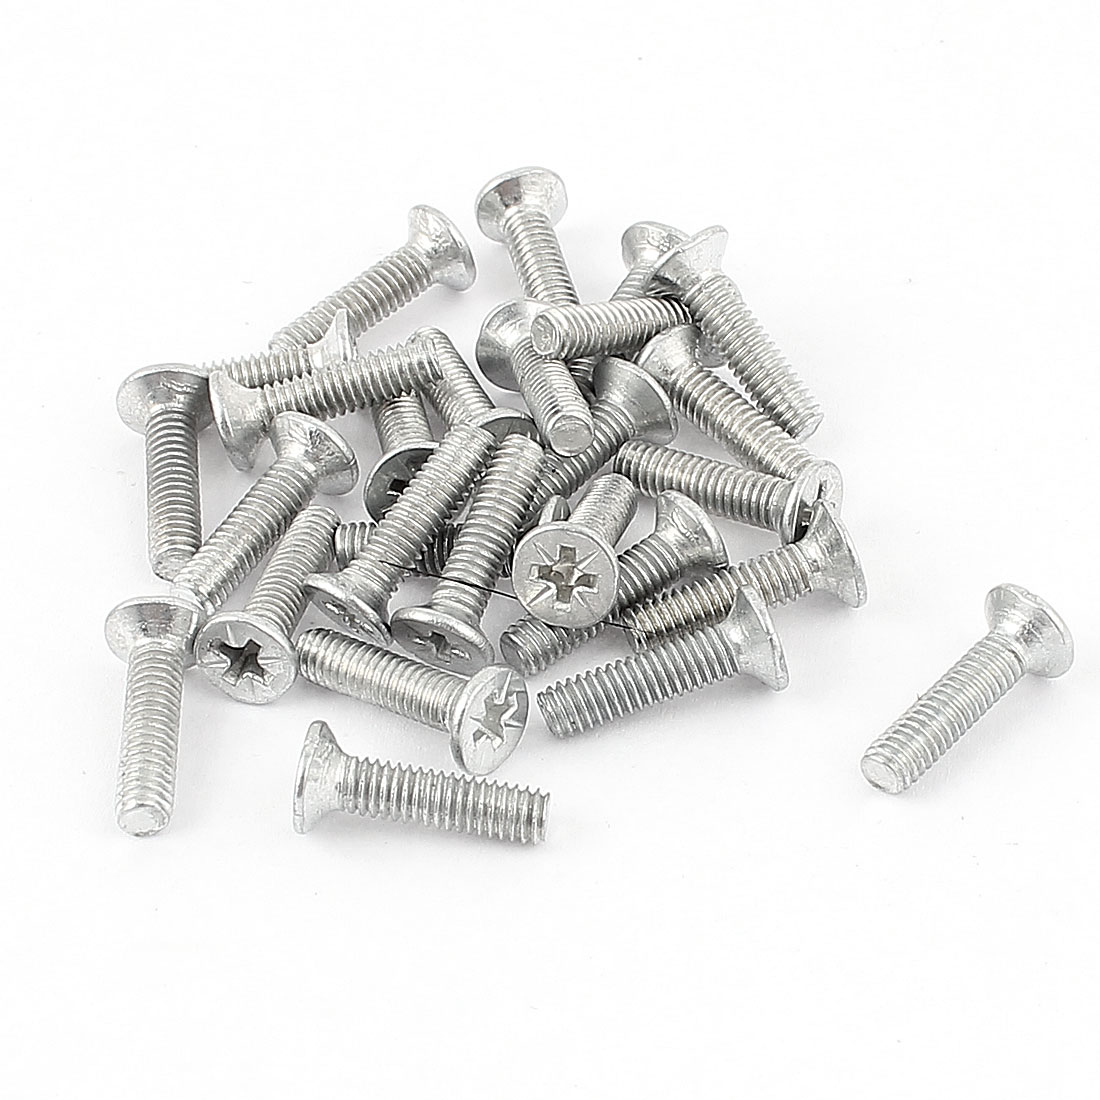 0.7mm Pitch M4 x 13mm Thread Metal Pozi Posi Countersunk Screws Bolts Fasteners 27pcs